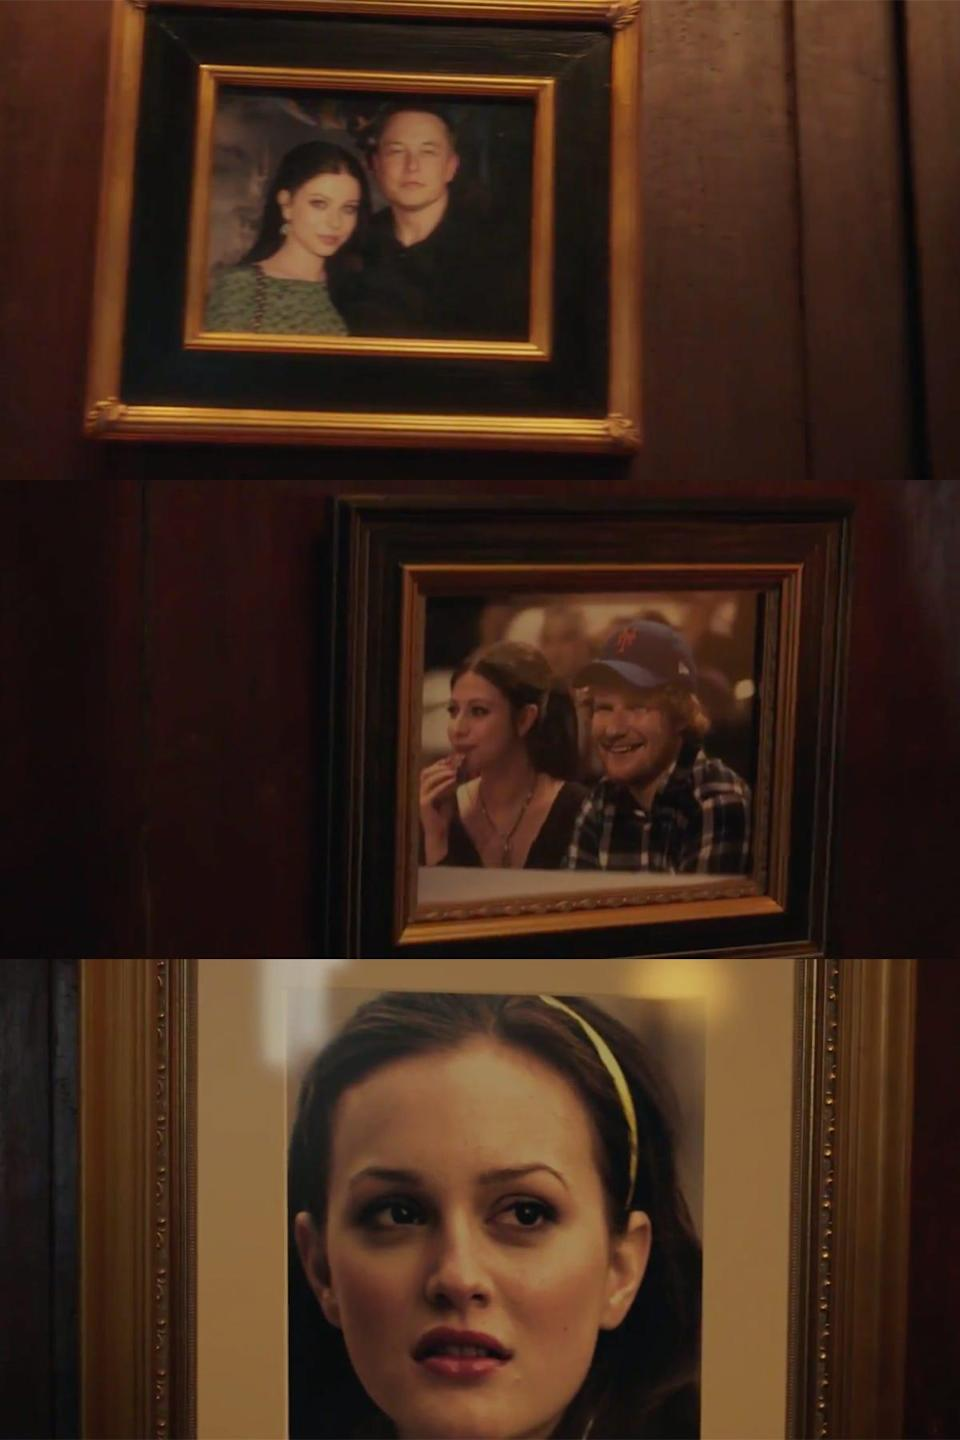 """Framed photos of Michelle Trachtenberg's """"Gossip Girl"""" character, Georgina, with Elon Musk and Ed Sheeran, along with a photo of Leighton Meester as Blair Waldorf."""